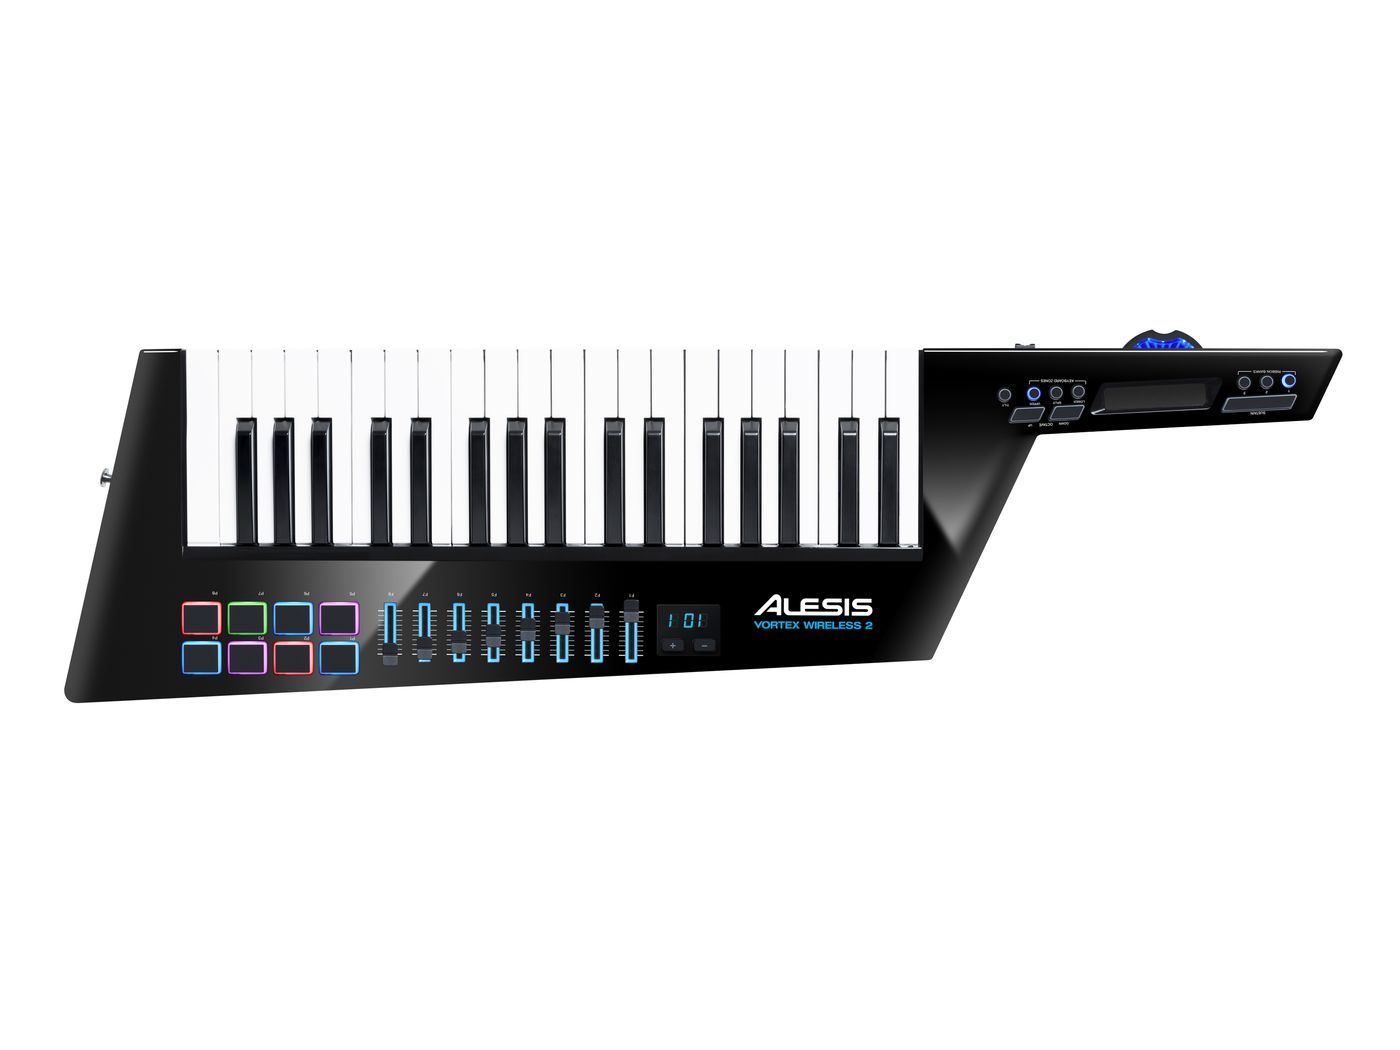 It's 2018 and Alesis has debuted a new wireless keytar - The Verge